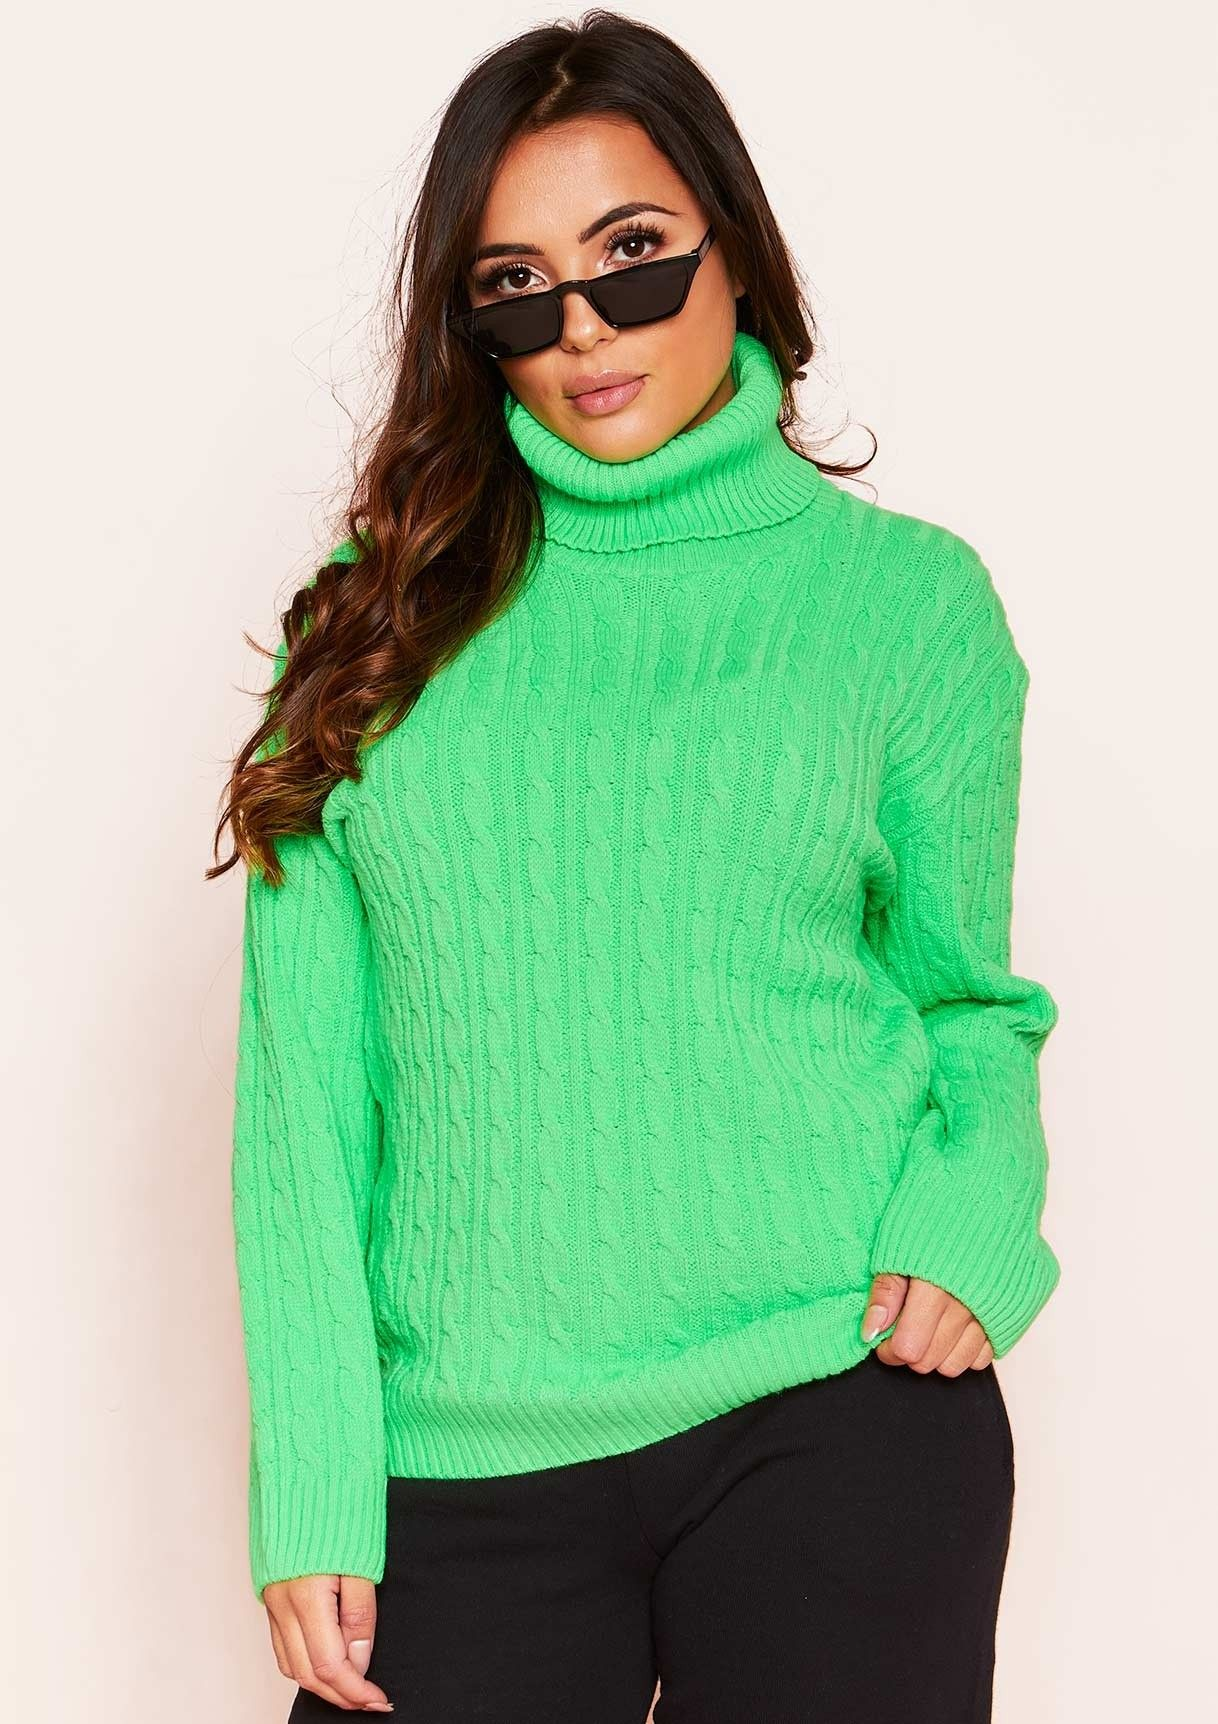 6cdf409d55 Missyempire - Isla Neon Green Roll Neck Knitted Cable Jumper ...